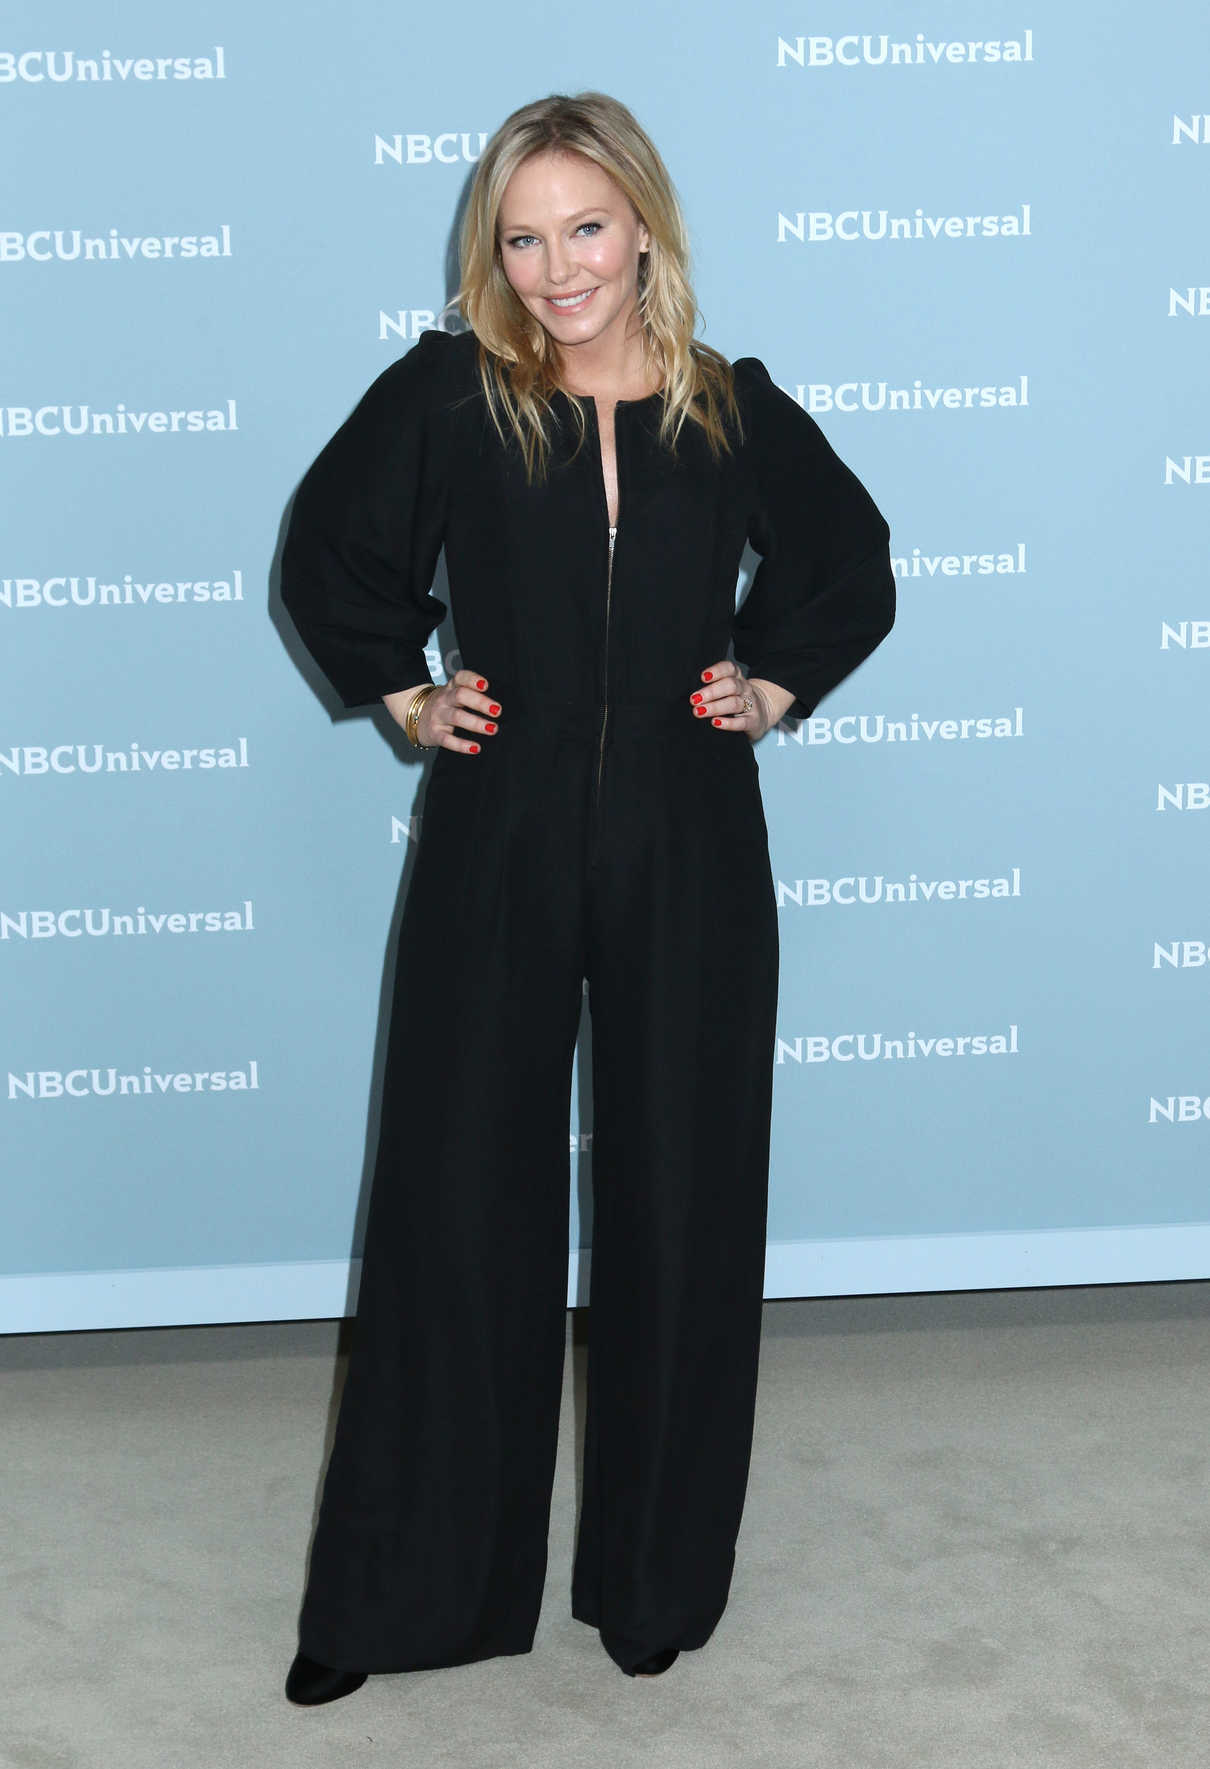 Kelli Giddish at NBCUniversal Upfront Presentation in New York City 05/14/2018-1